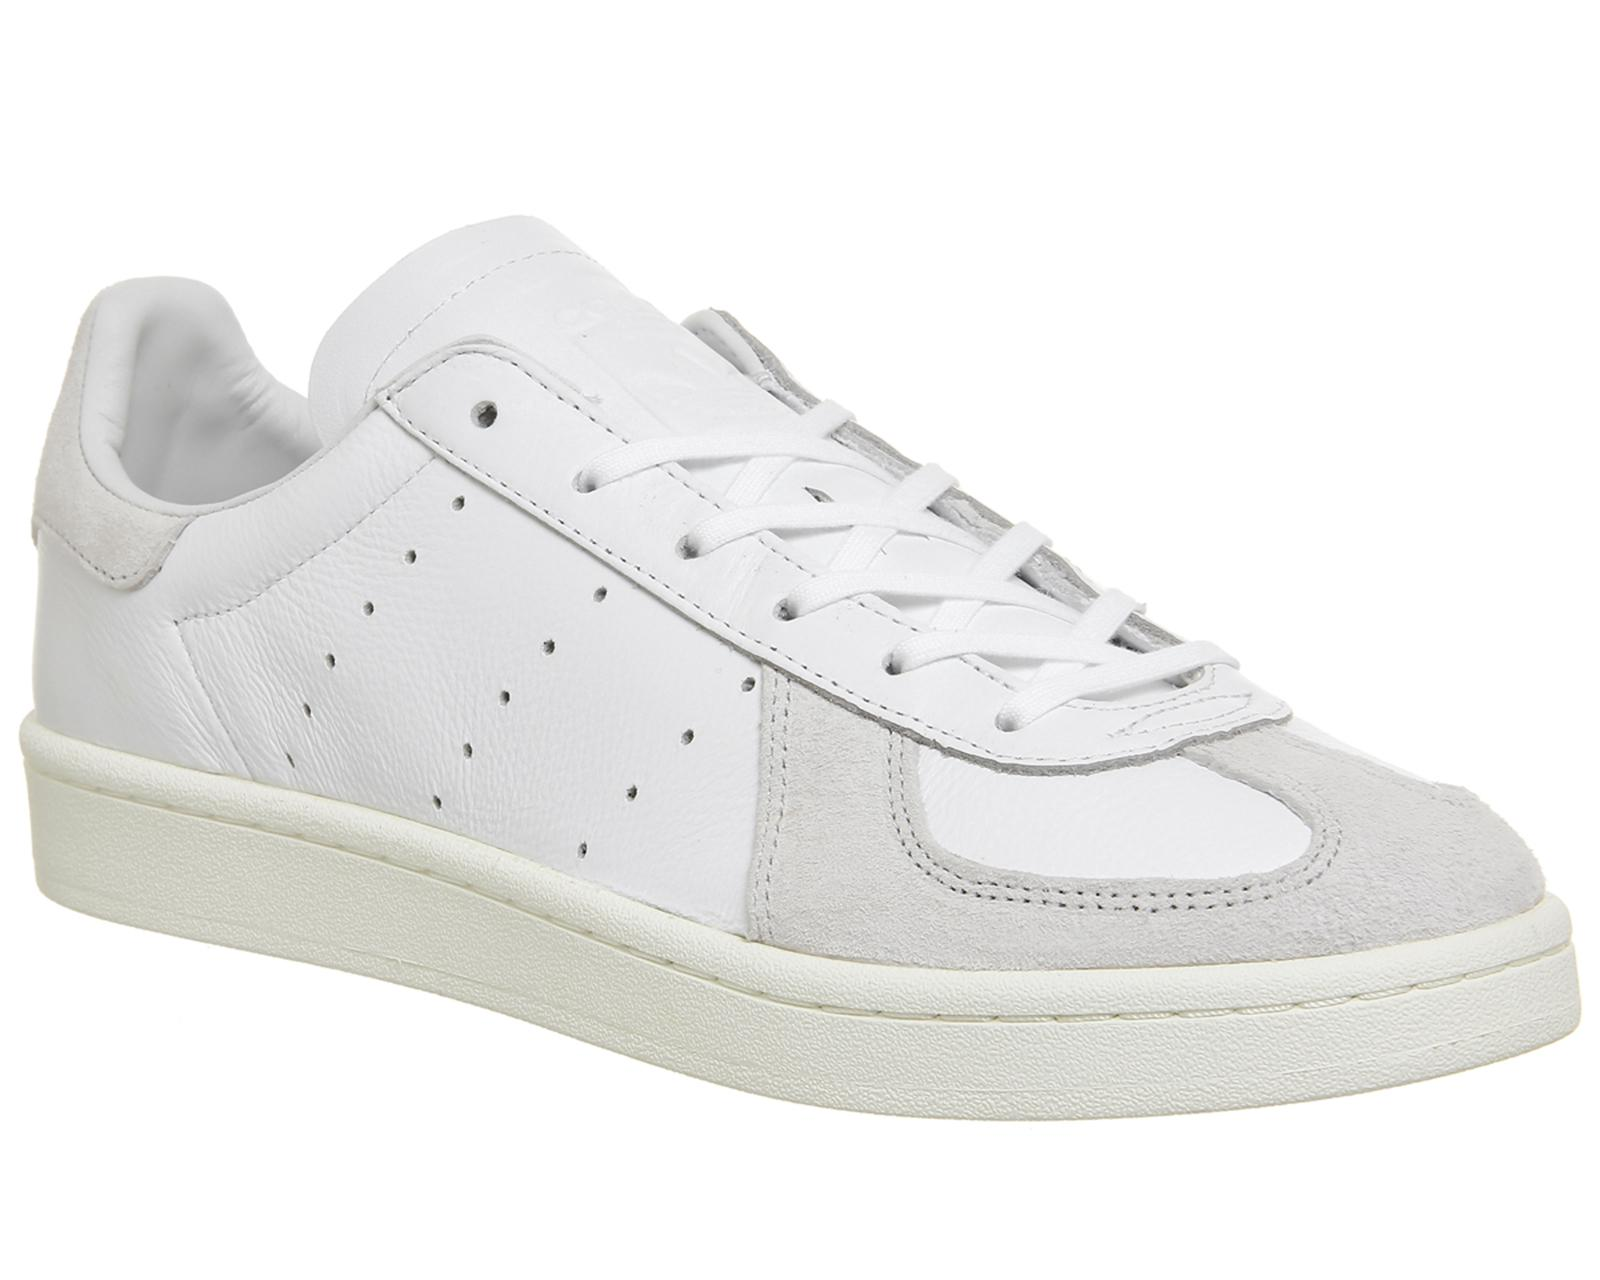 buy popular 05436 86c58 Adidas Bw Avenue Trainers in White for Men - Lyst